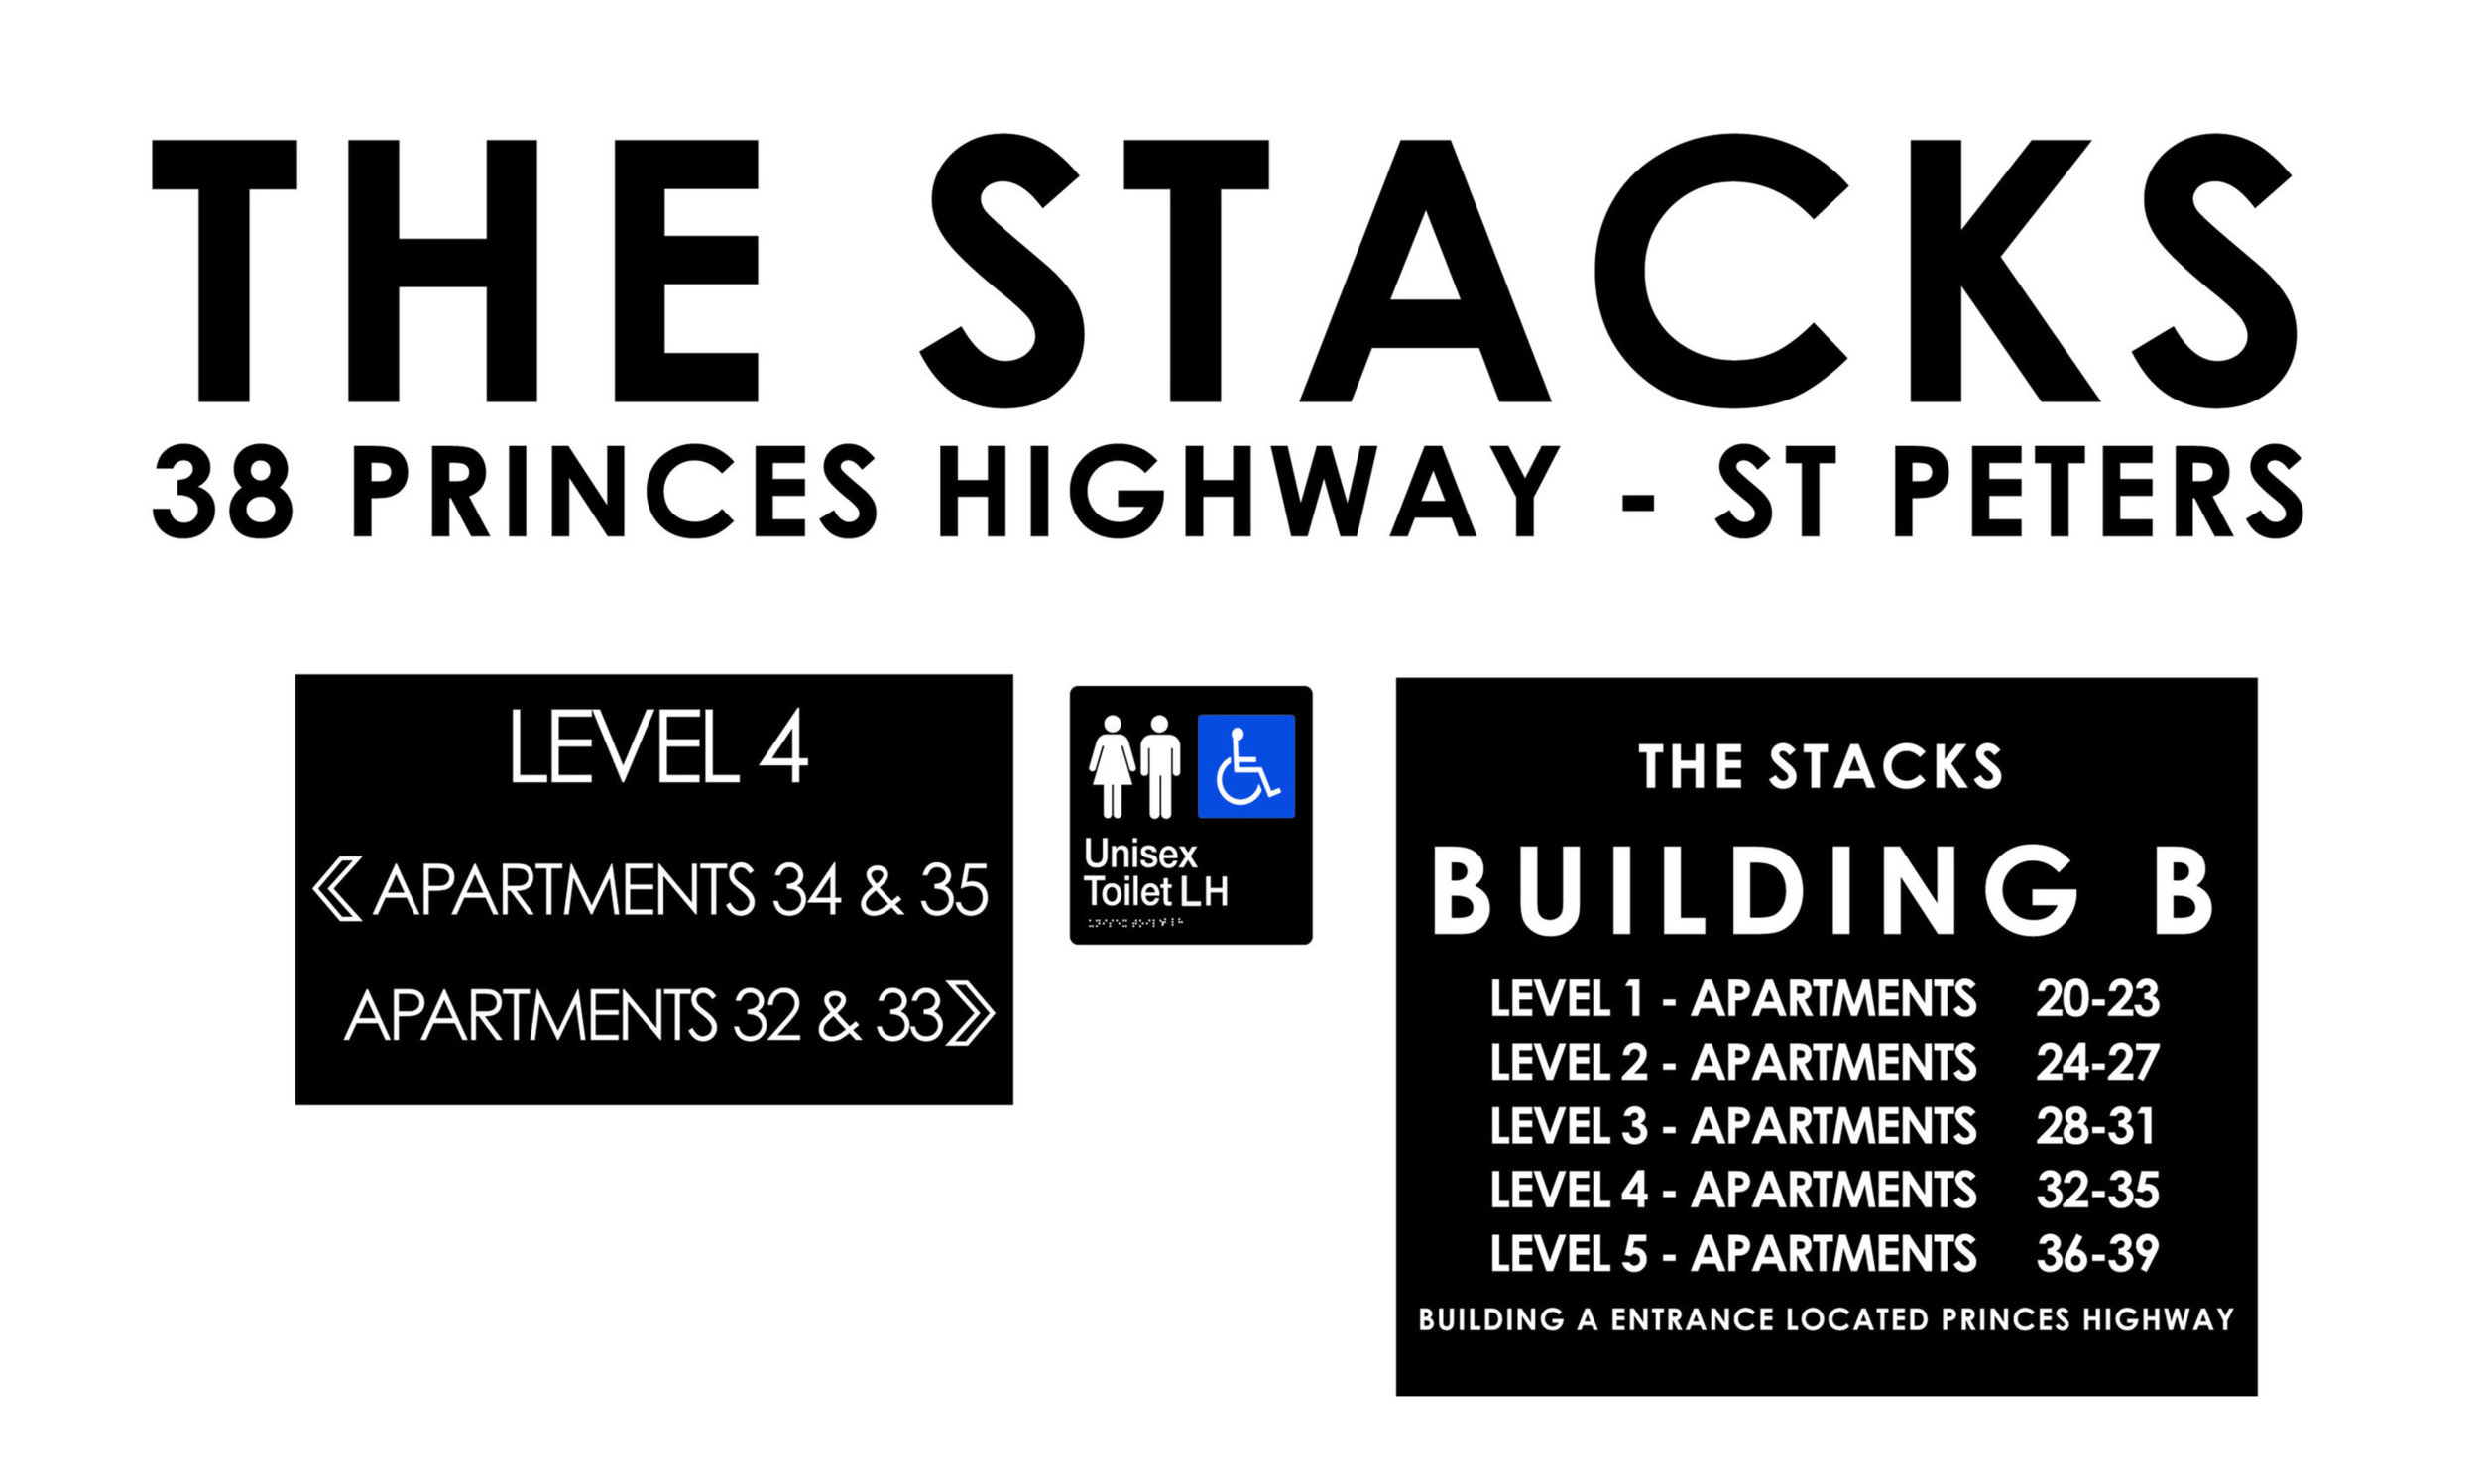 The Stacks Apartments - The Stacks - St Peters, SydneyClose client relationship to design a industrial robust signage package for a boutique 35 apartment development by Casumo Construction next to the iconic smoke stacks from the brick works that used to operate across the road, now a massive parkland.5mm Aluminium engraved with white paint filled used on all wayfinding, braille and tactile to match the color scheme throughout.http://www.thestacks.com.au/